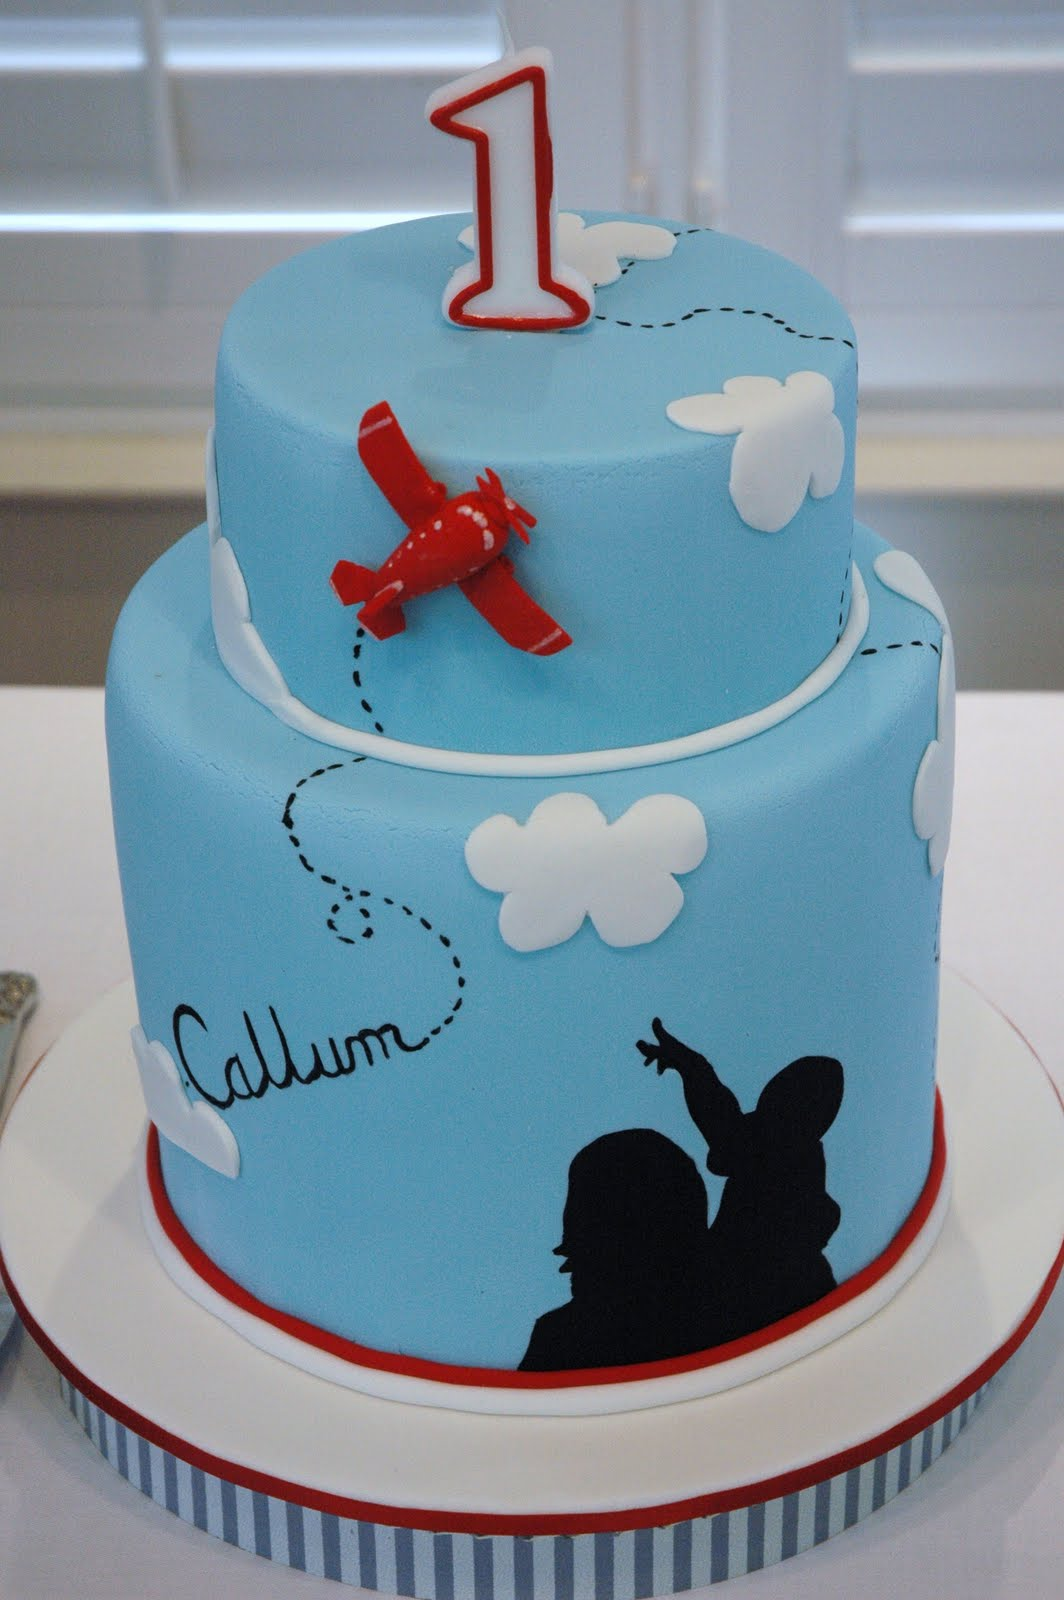 Images Of Plane Cake : MON TRESOR: REAL PARTY SUBMISSION: Aeroplane Party!